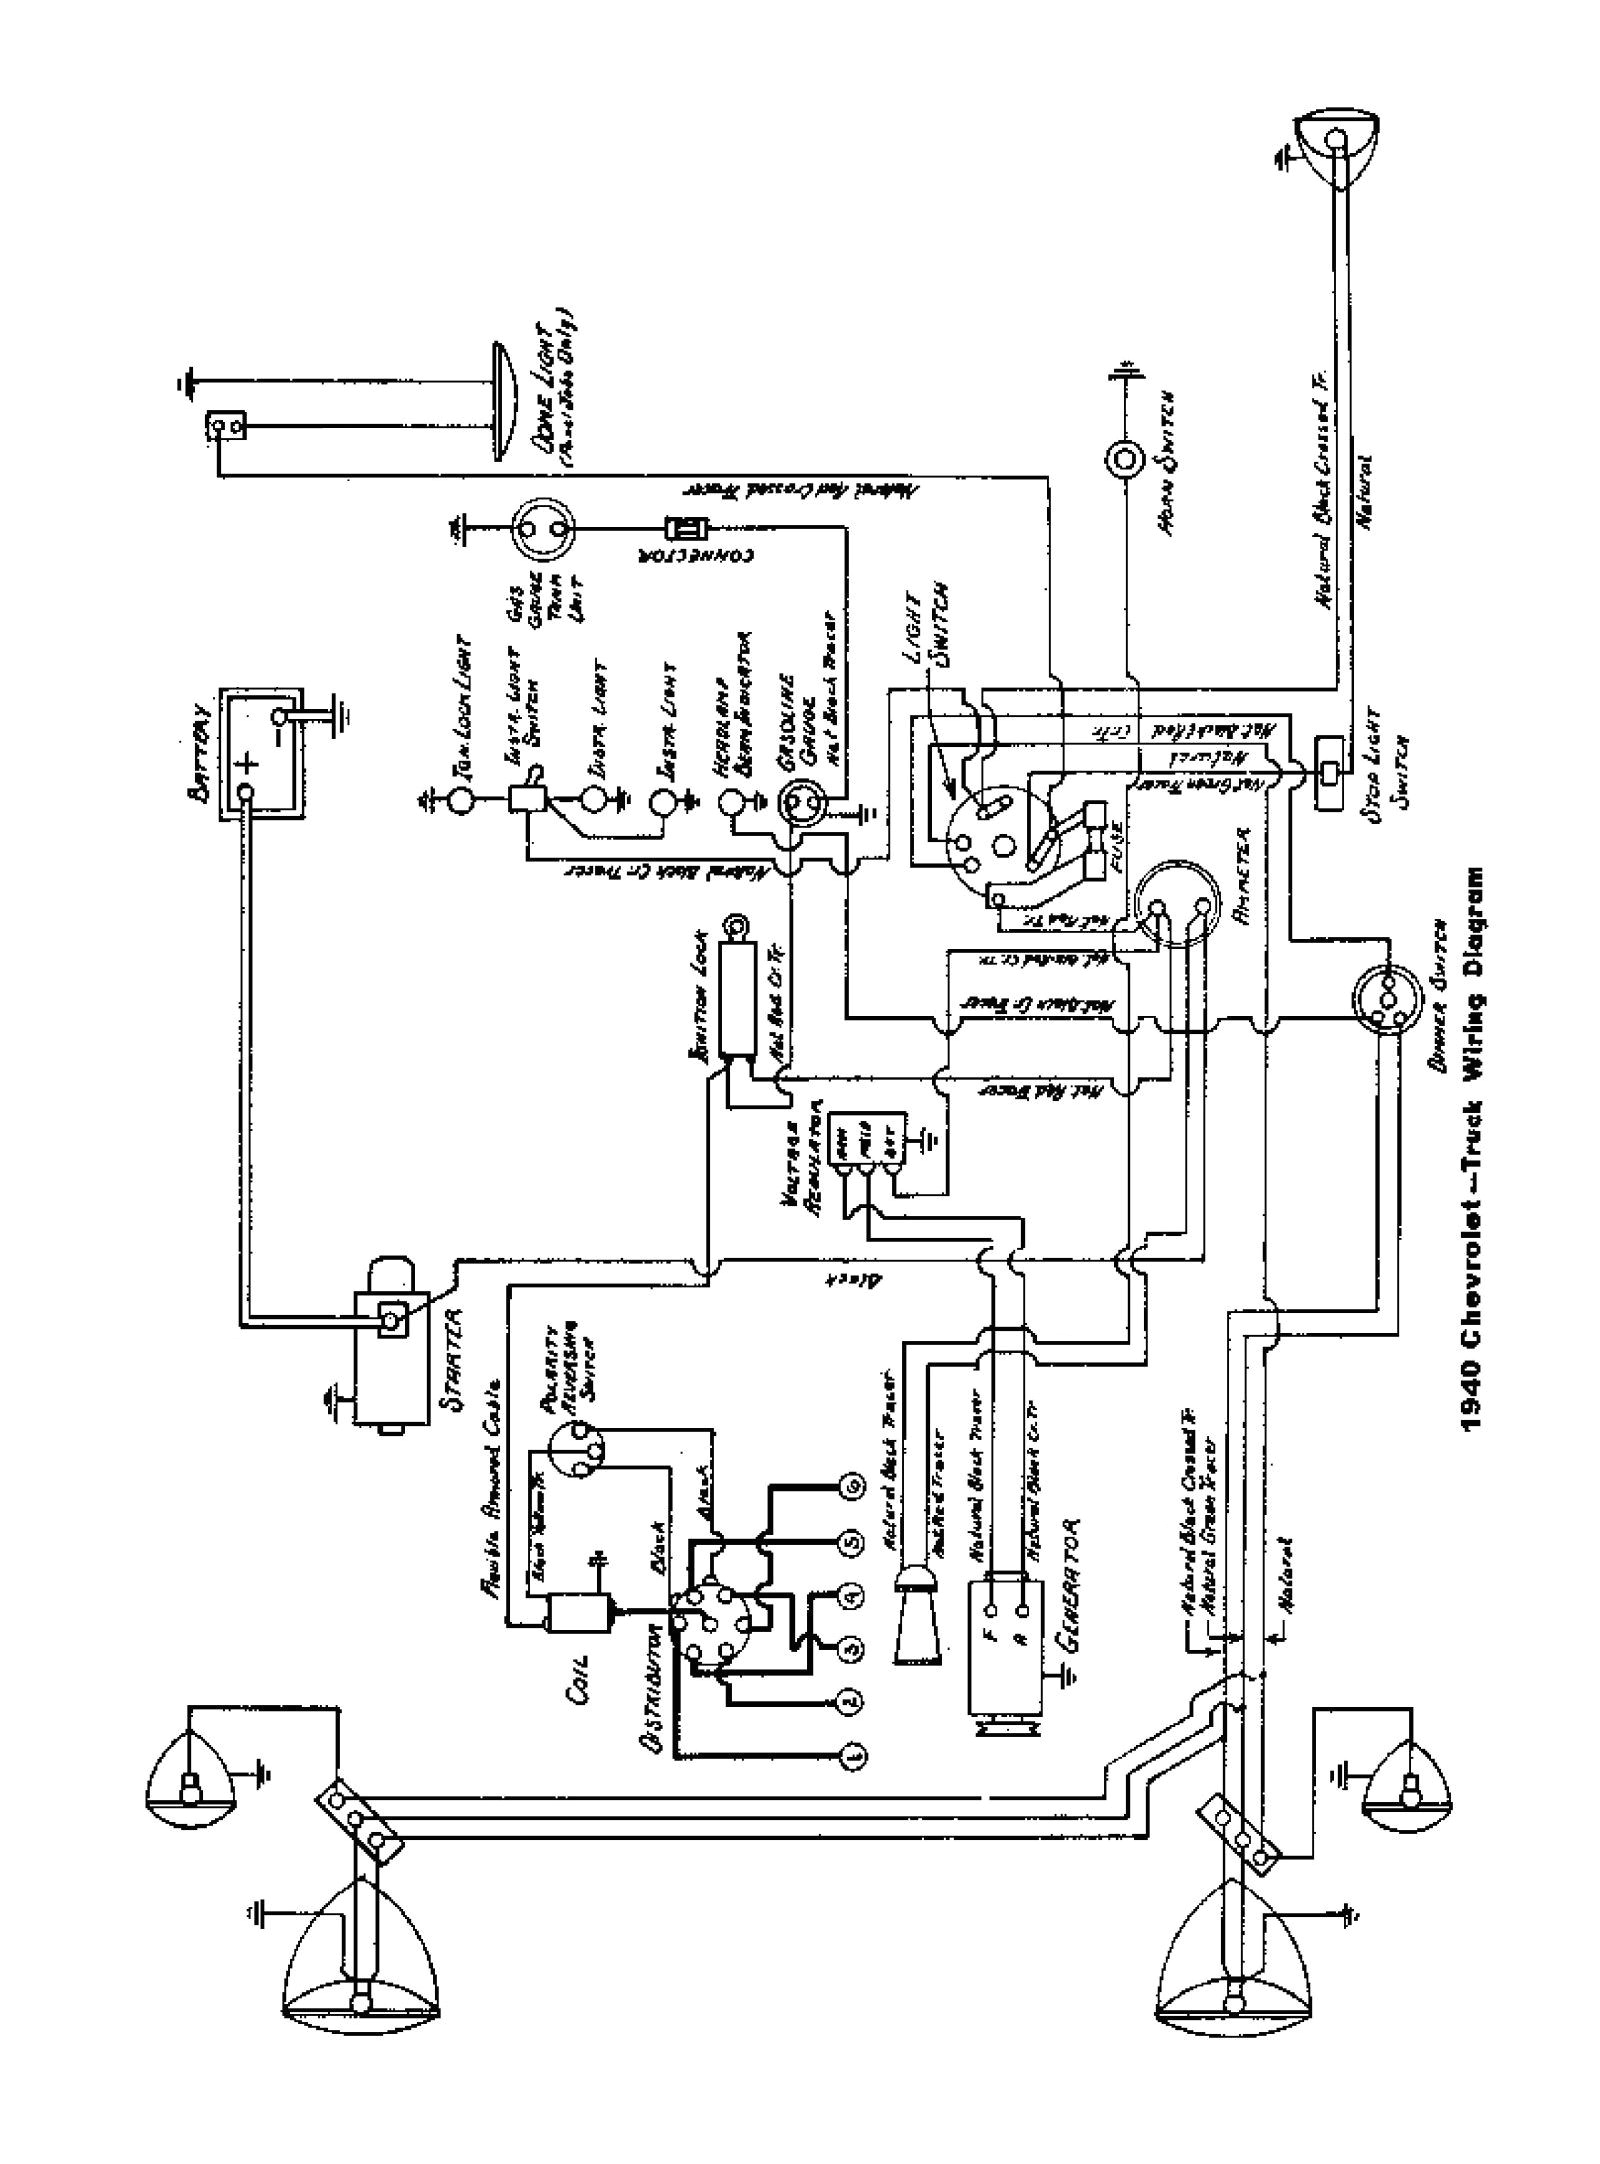 charging circuit diagram for the 1940 49 buick all models book charging circuit diagram for the 1953 55 buick all except 1953 series 40